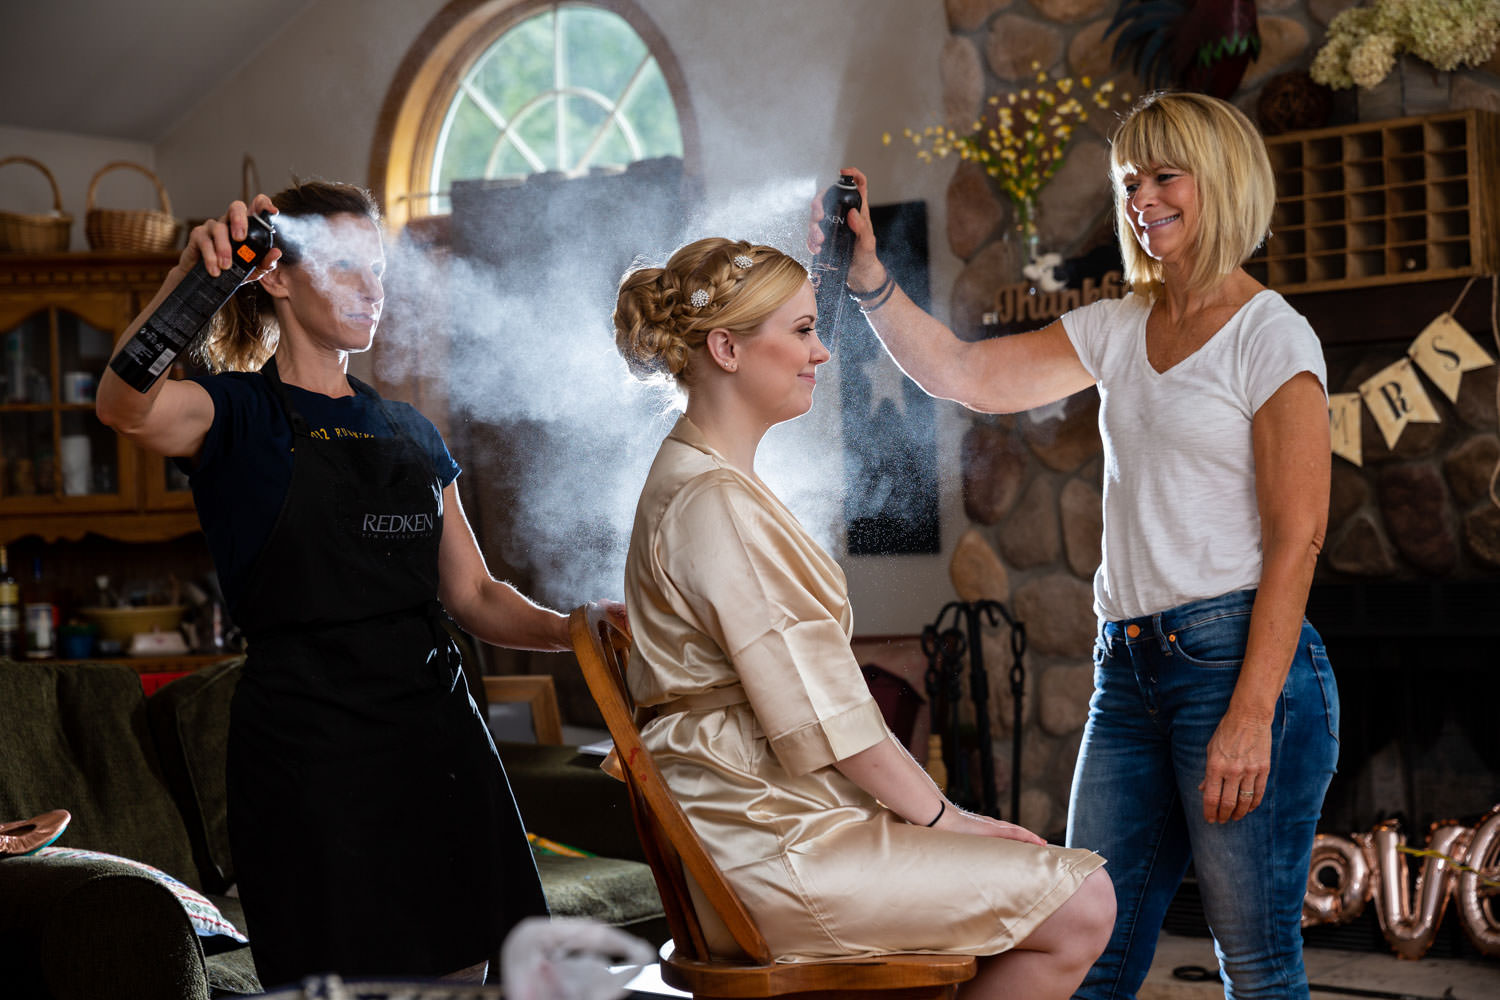 Hairdressing spaying brides hair while wearing getting ready robe